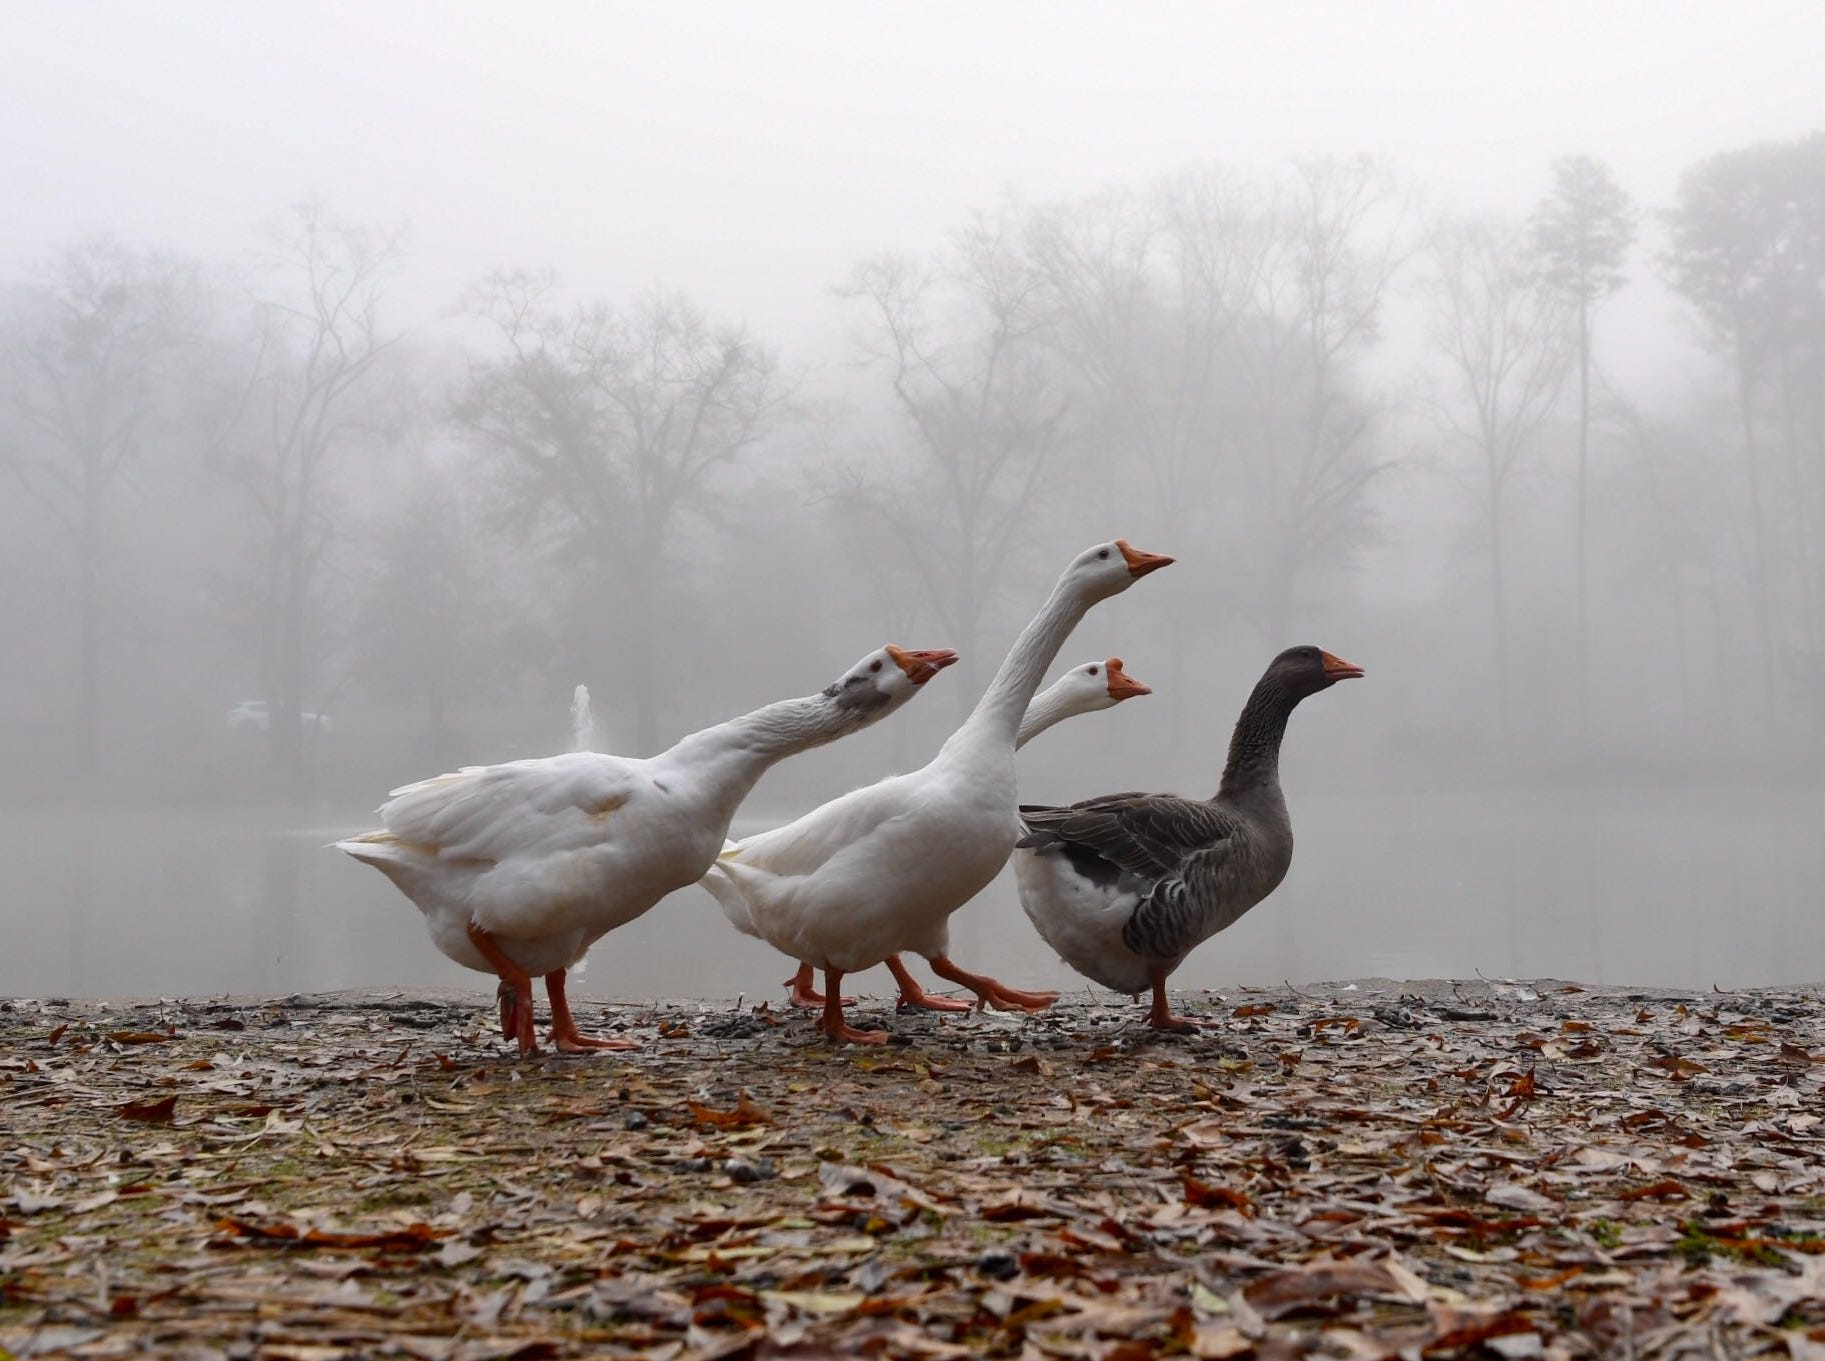 Foggy morning at Cater's Lake near Greenville Street in Anderson on Dec. 11, 2018.